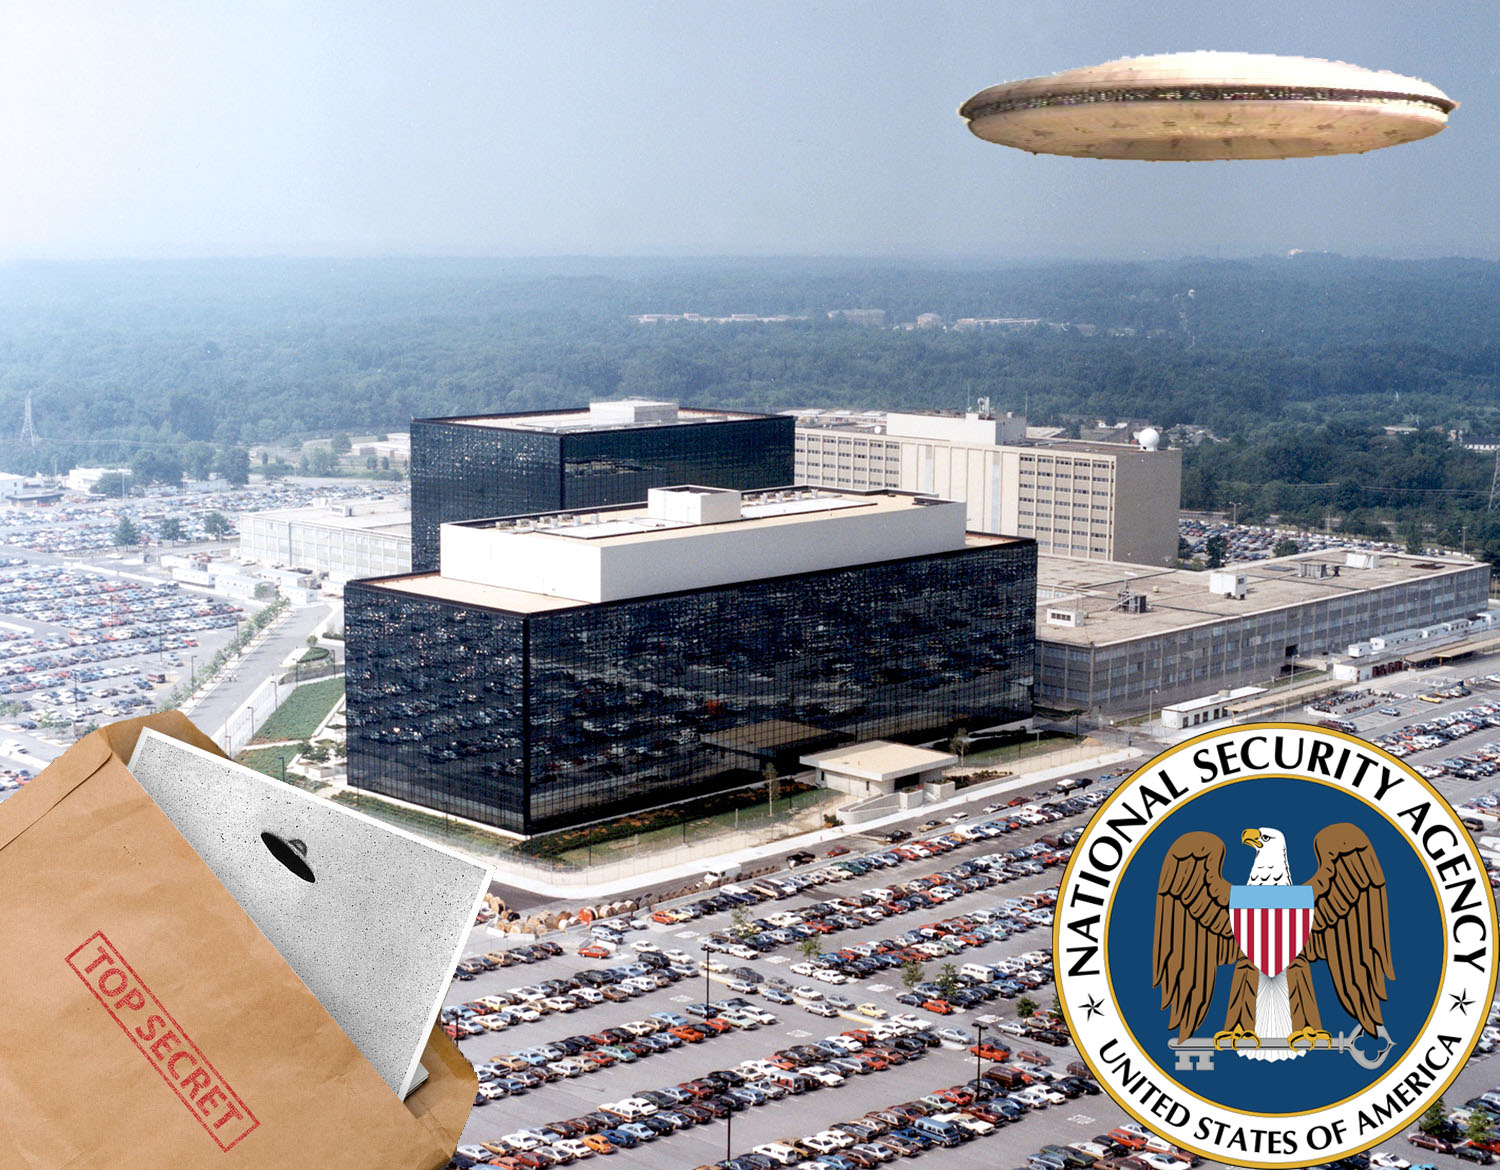 http://exopolitics.org/wp-content/uploads/2014/03/NSA-Leaked-documents-and-UFOs.jpg